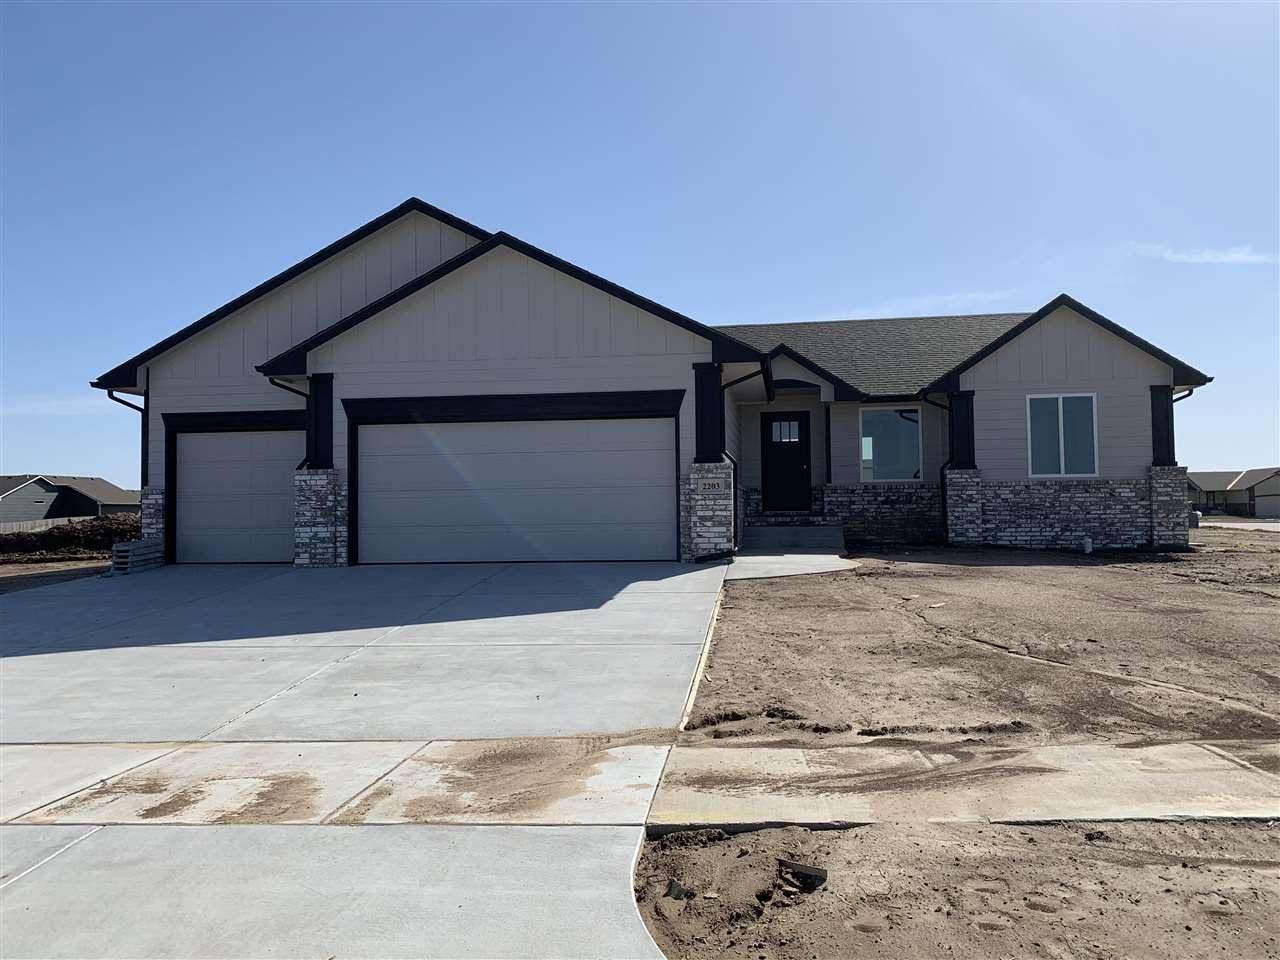 NEW COMFORT HOMES MODEL UNDER CONSTRUCTION (NOT FOR SALE YET)! Located in Prairie Creek's newest, 5t